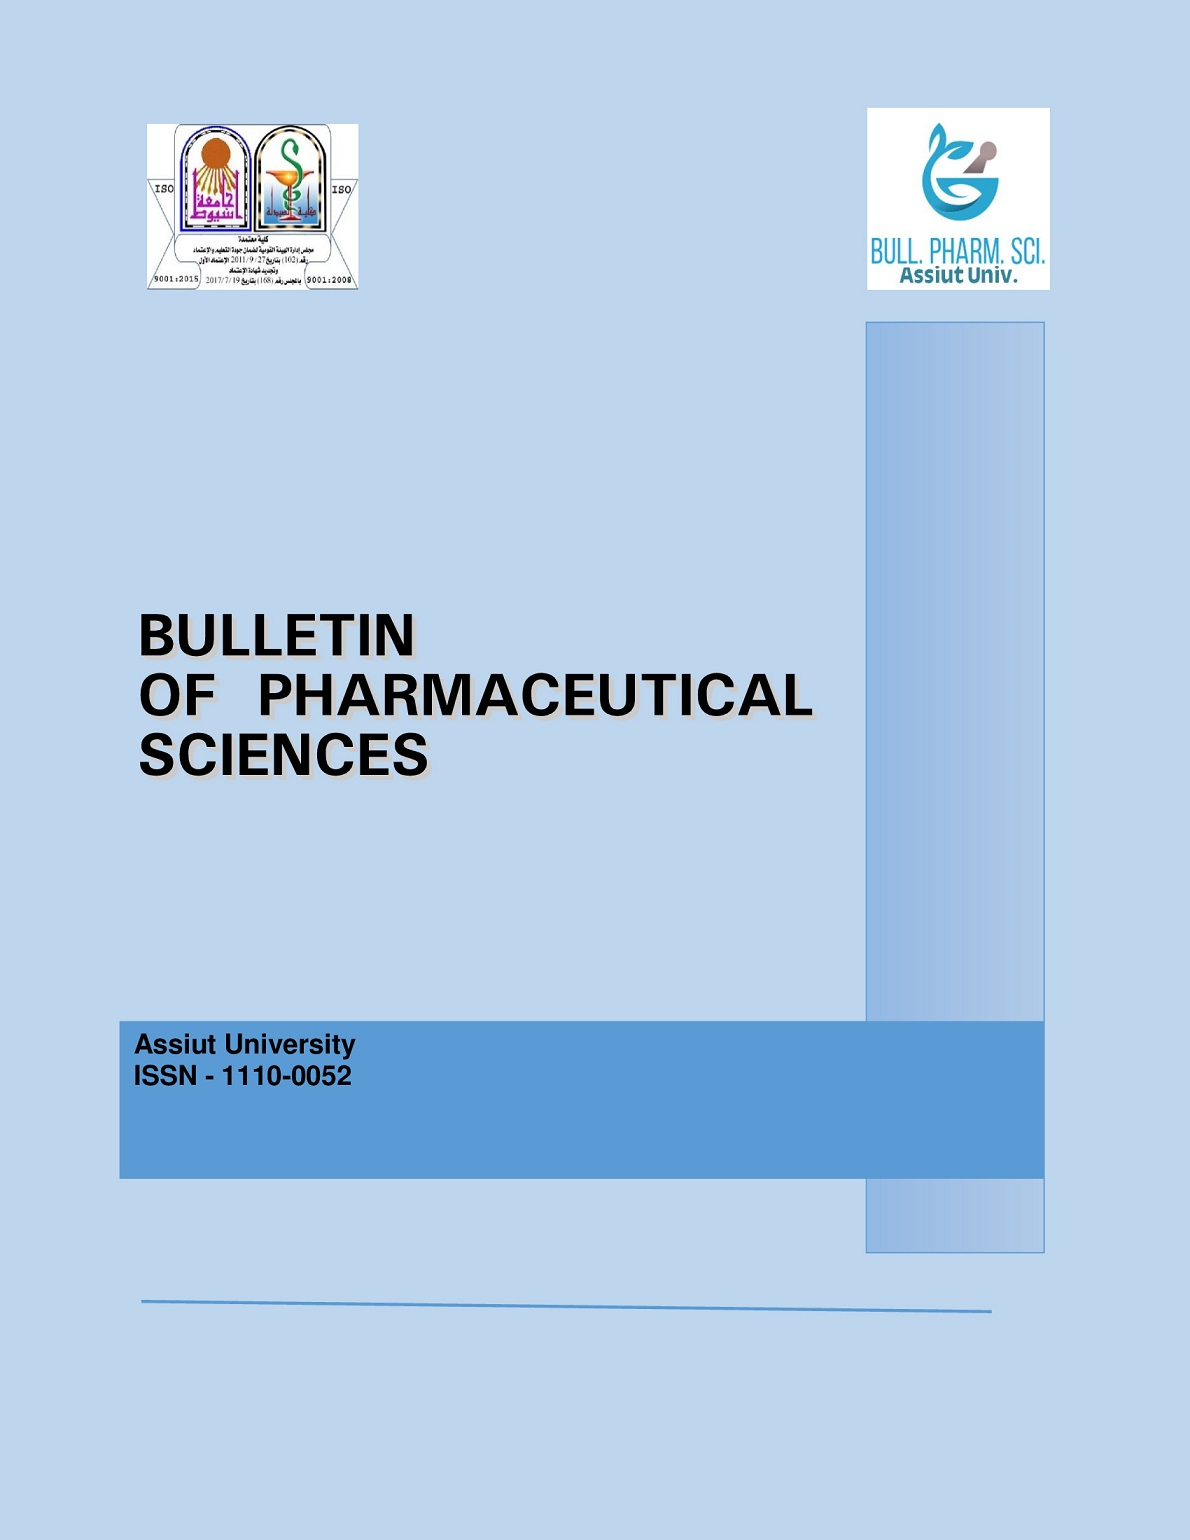 Bulletin of Pharmaceutical Sciences. Assiut